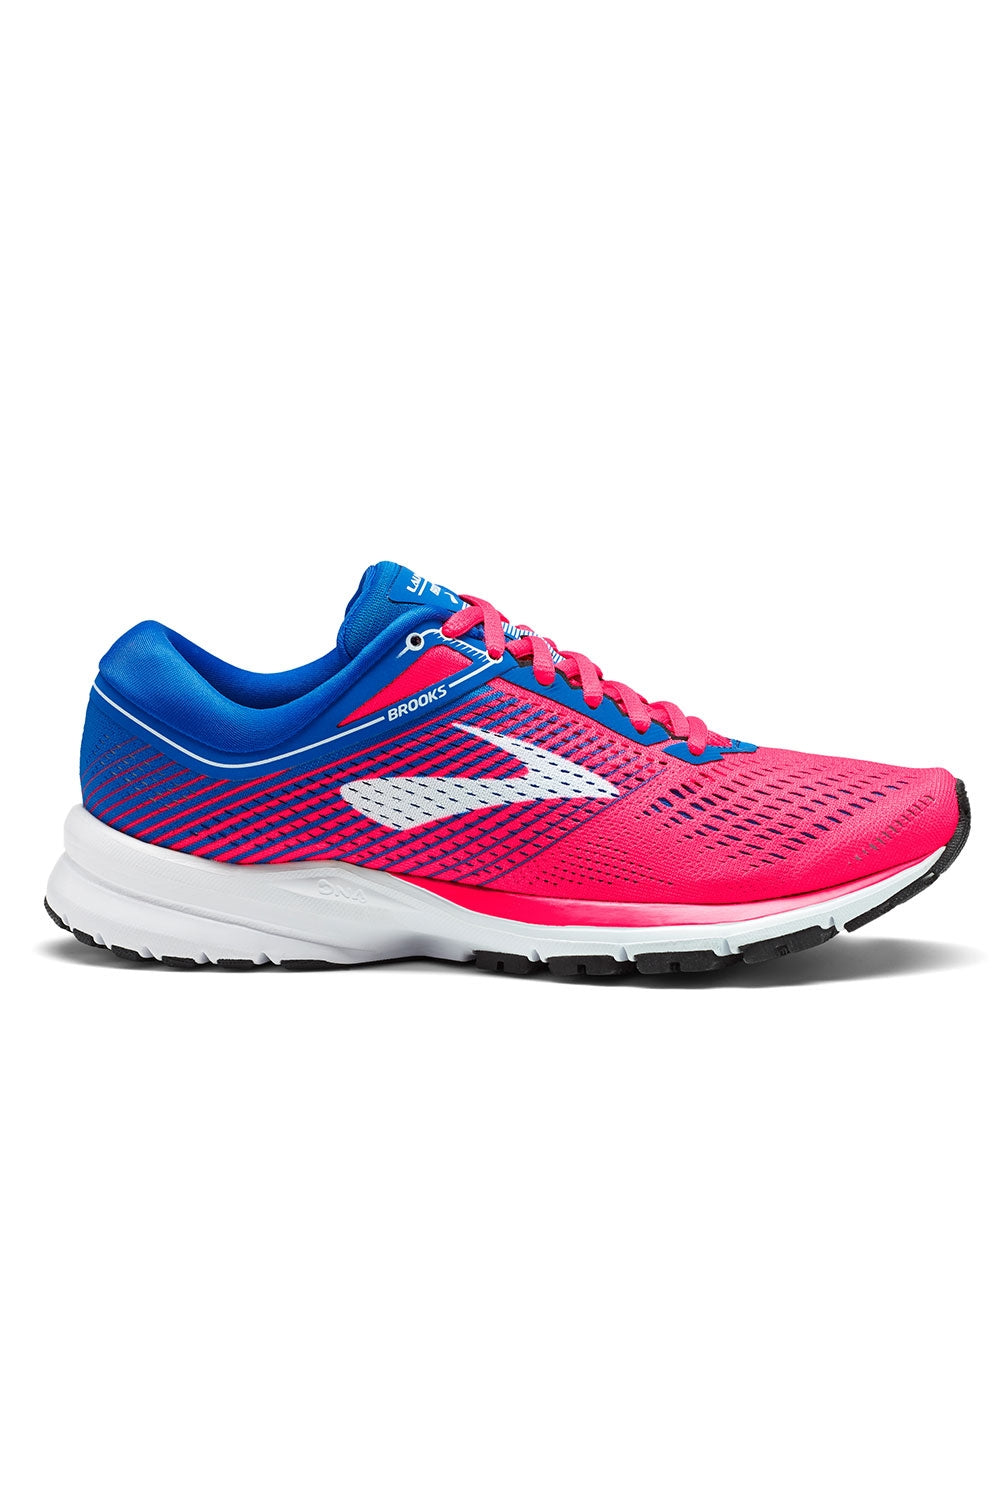 new styles 8ac37 91168 Women's Launch 5 Running Shoe - Pink/Blue/White